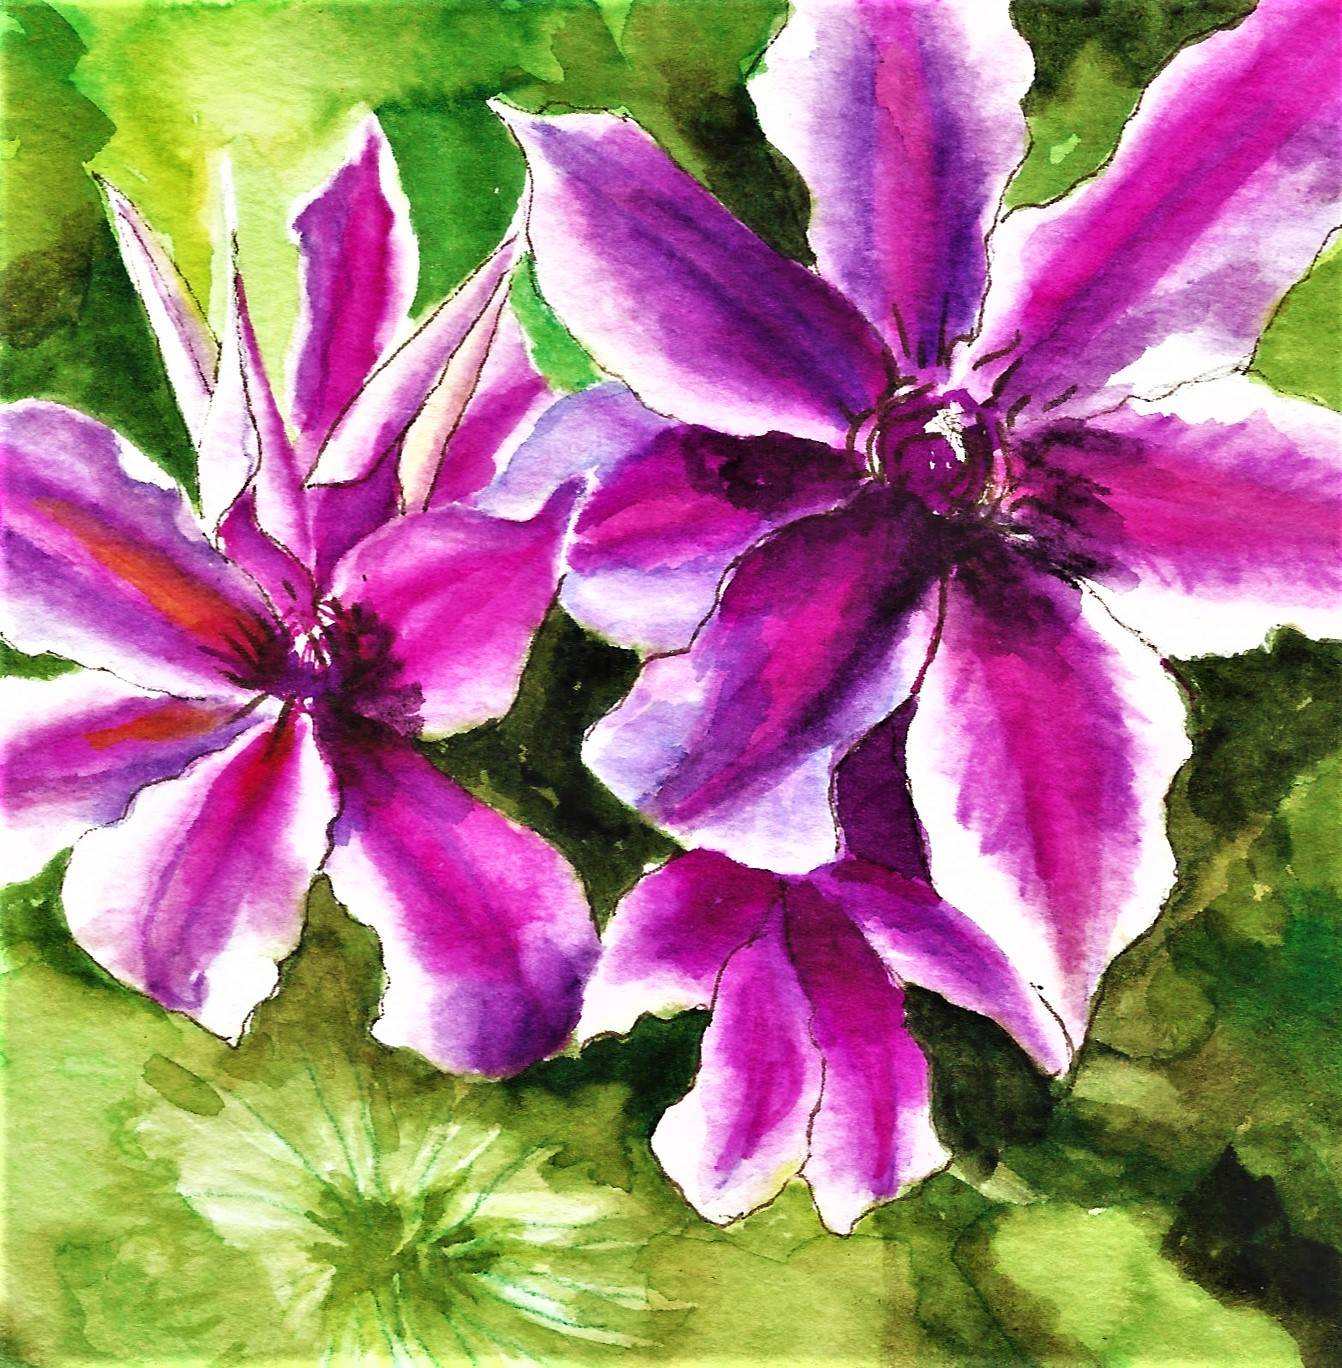 WATERCOLOR PAINTINGS - CLEMATISFOR THE FRIENDS OF THE ROGERSON CLEMATIS COLLECTION